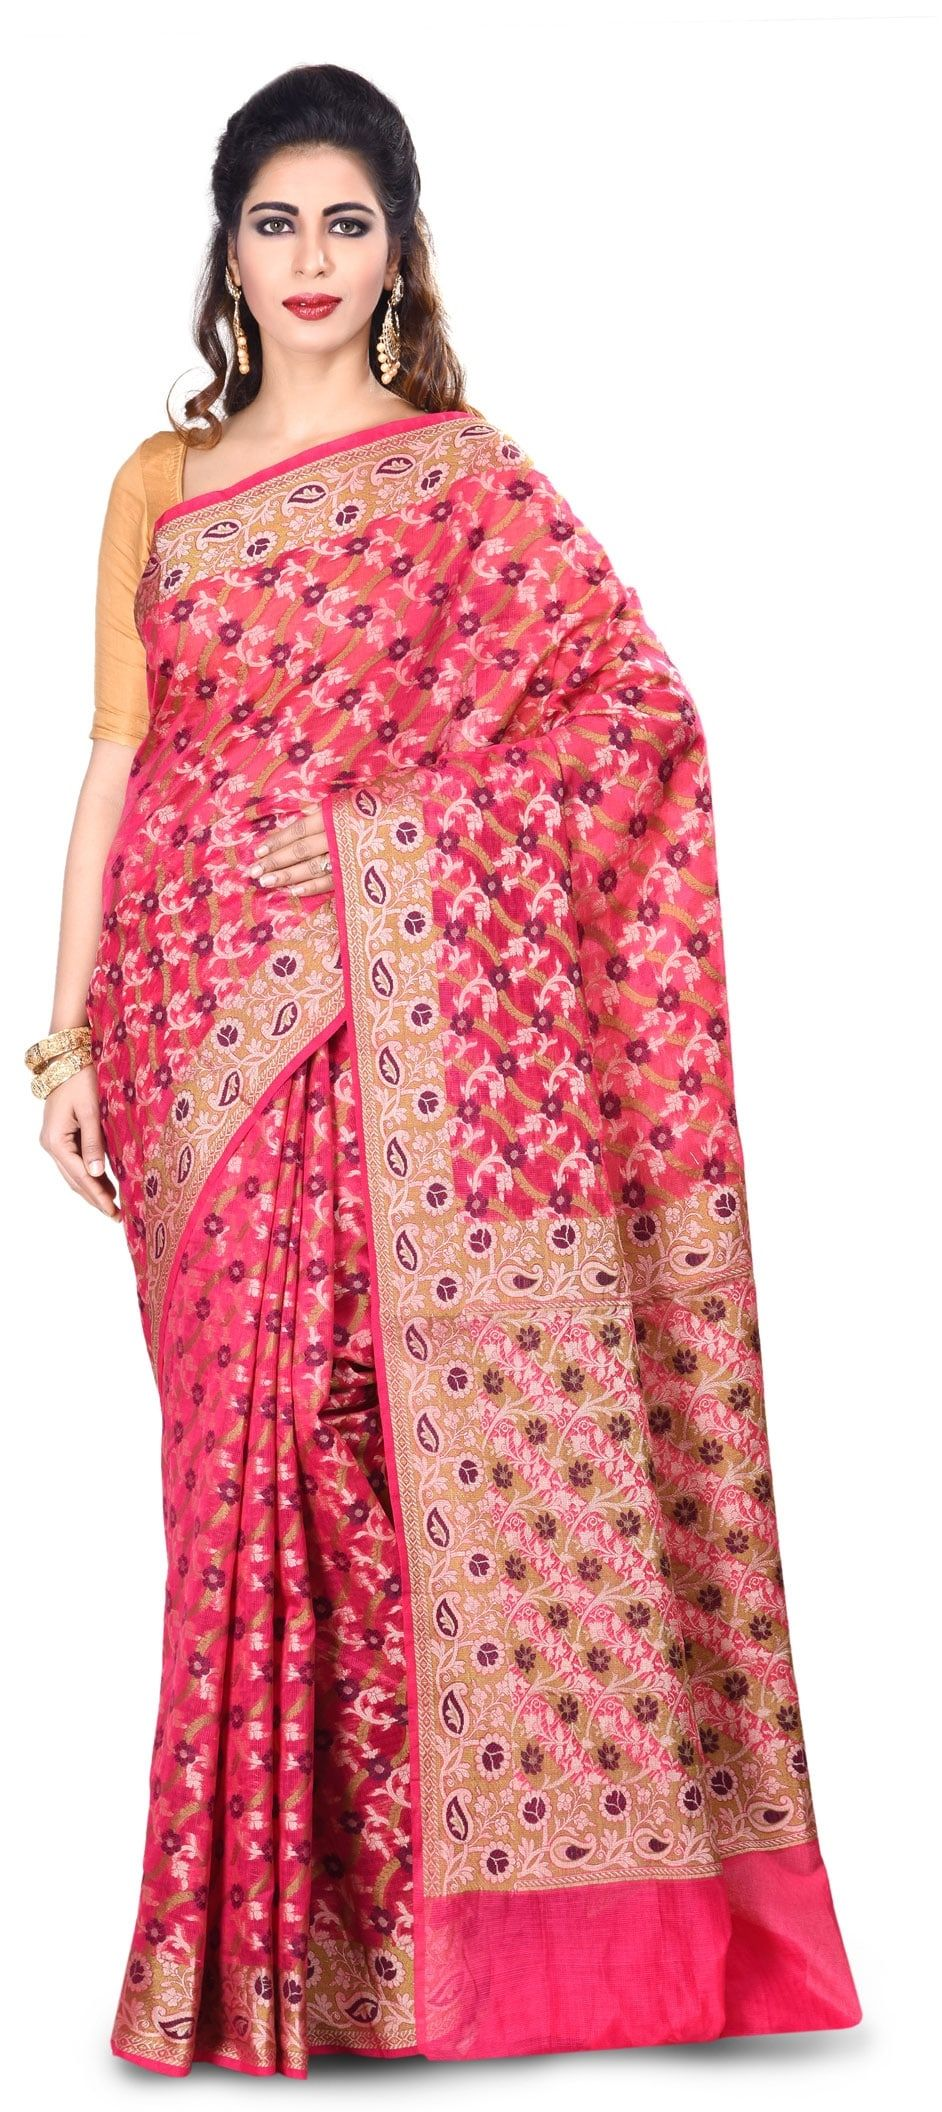 3a75ffc68d 767021: Pink and Majenta color family Party Wear Sarees with ...